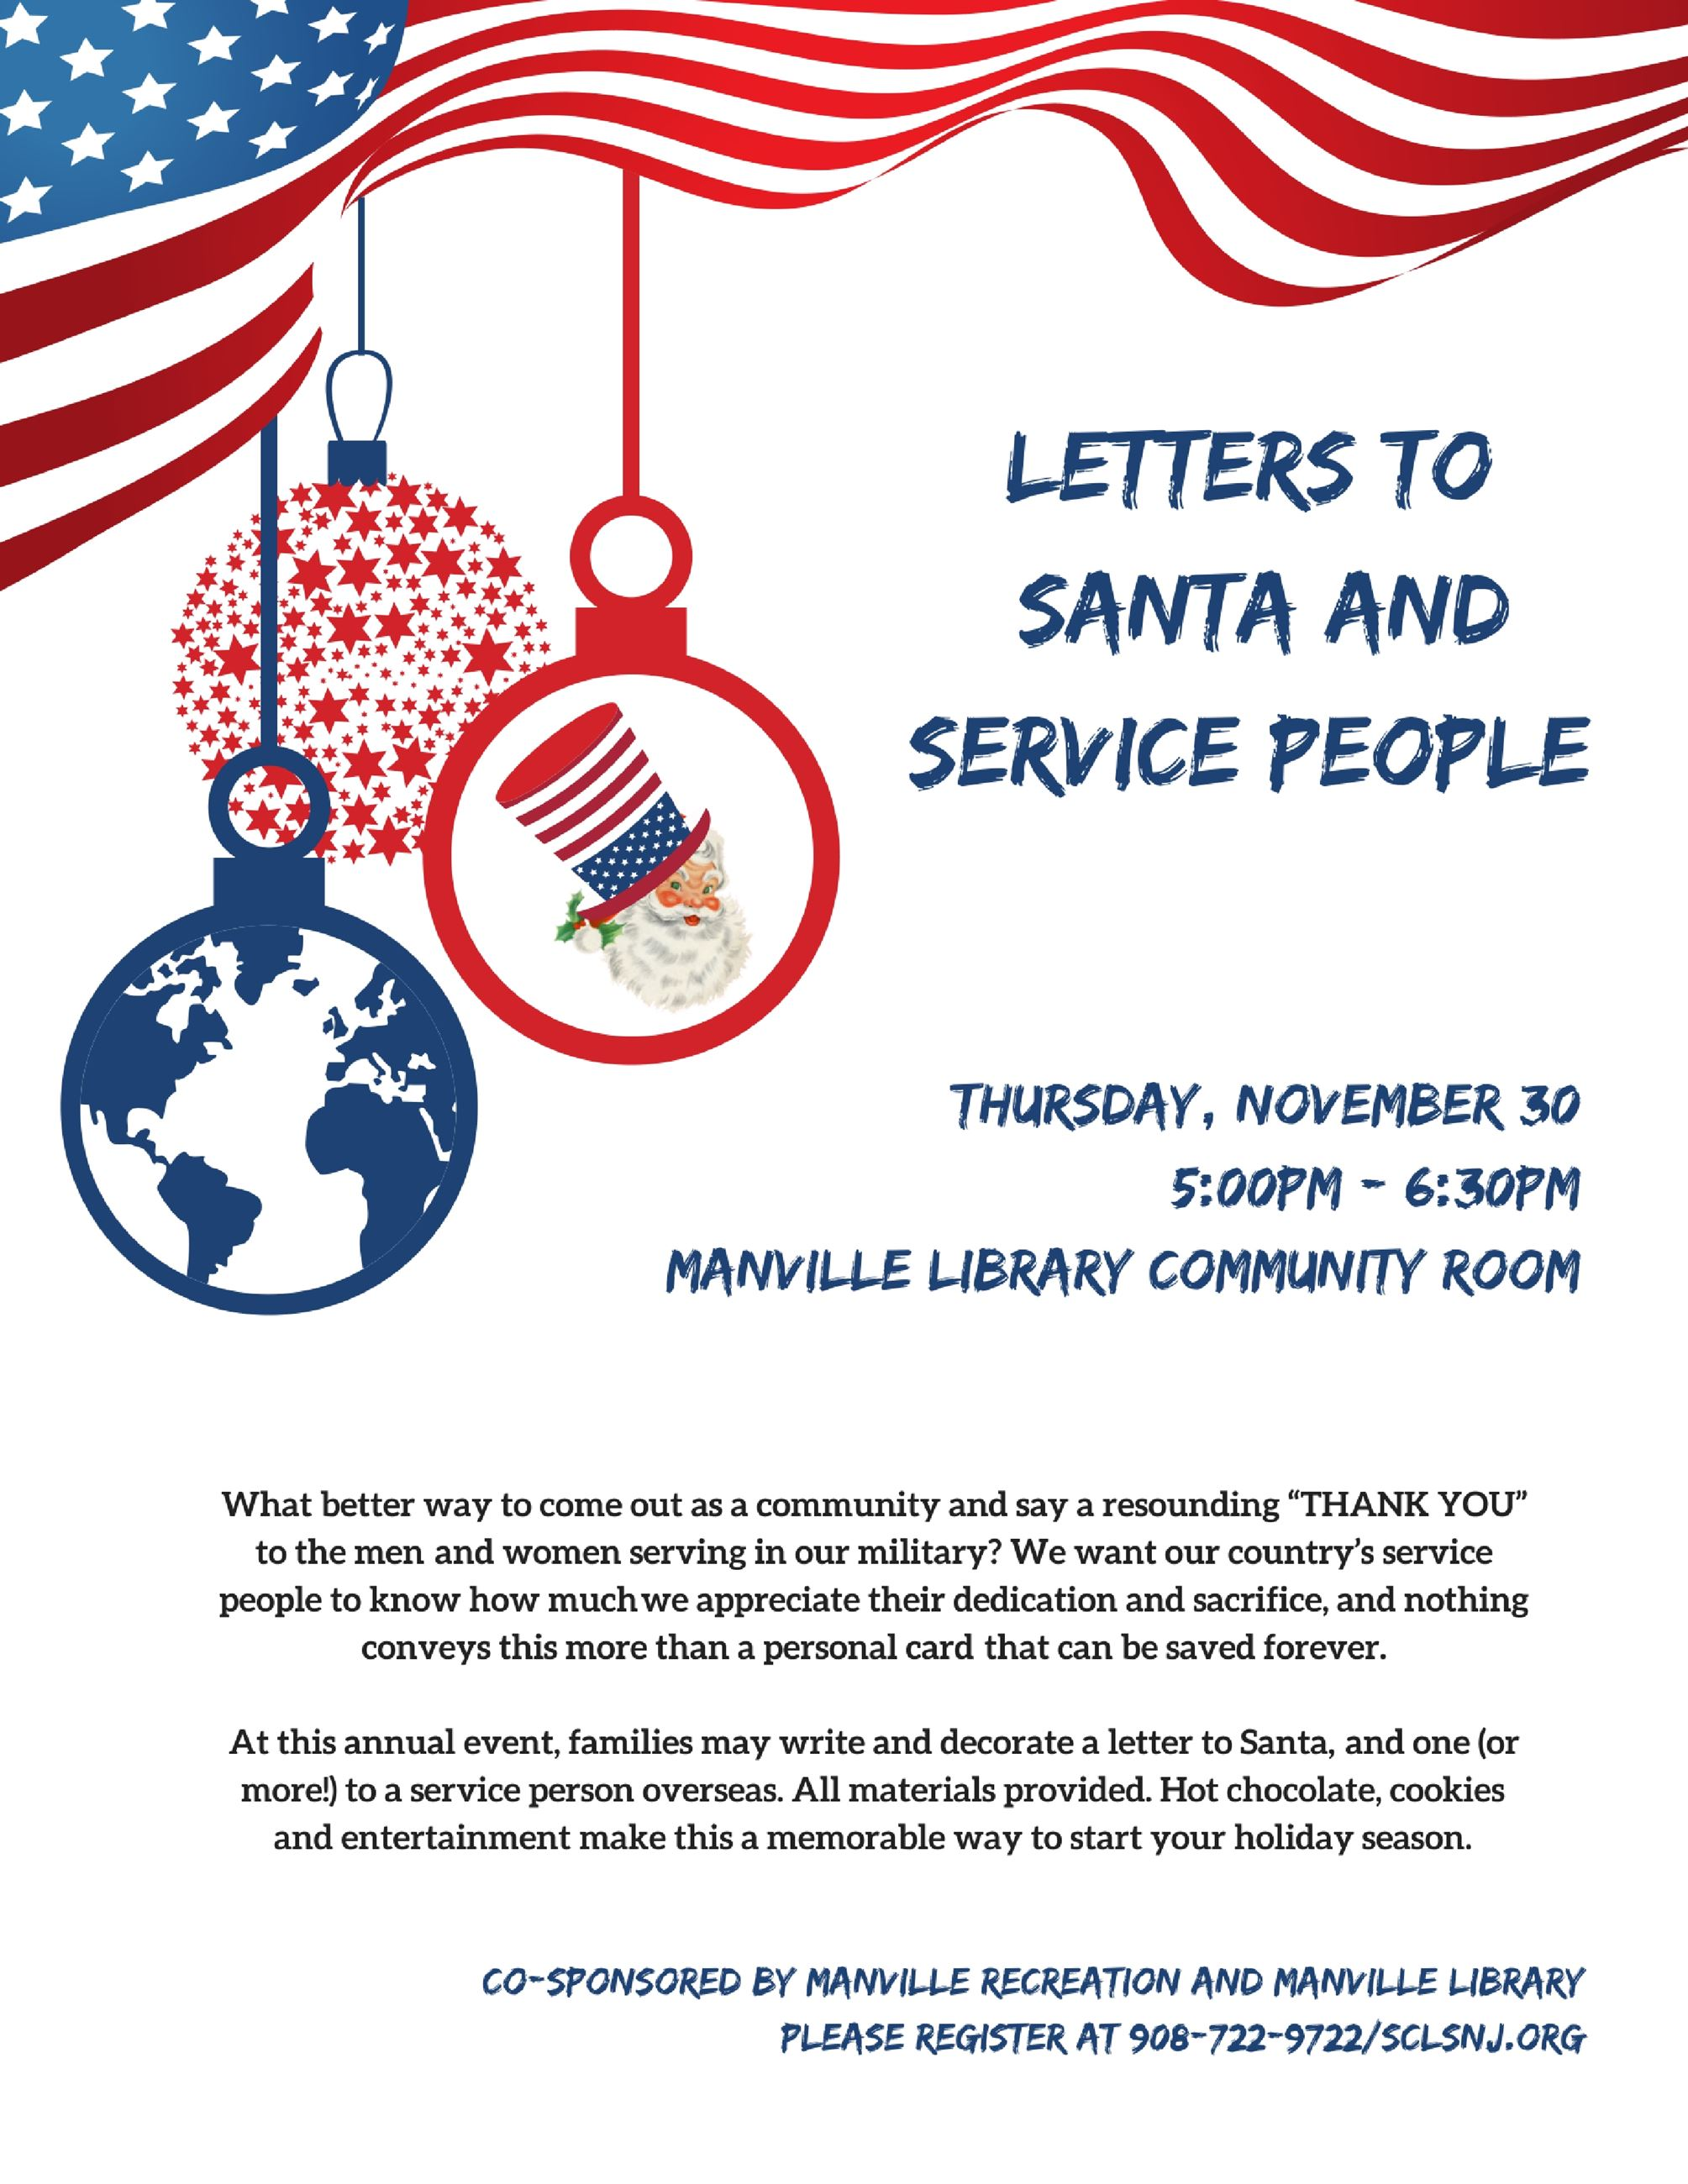 Letters to Santa and Service People 2017